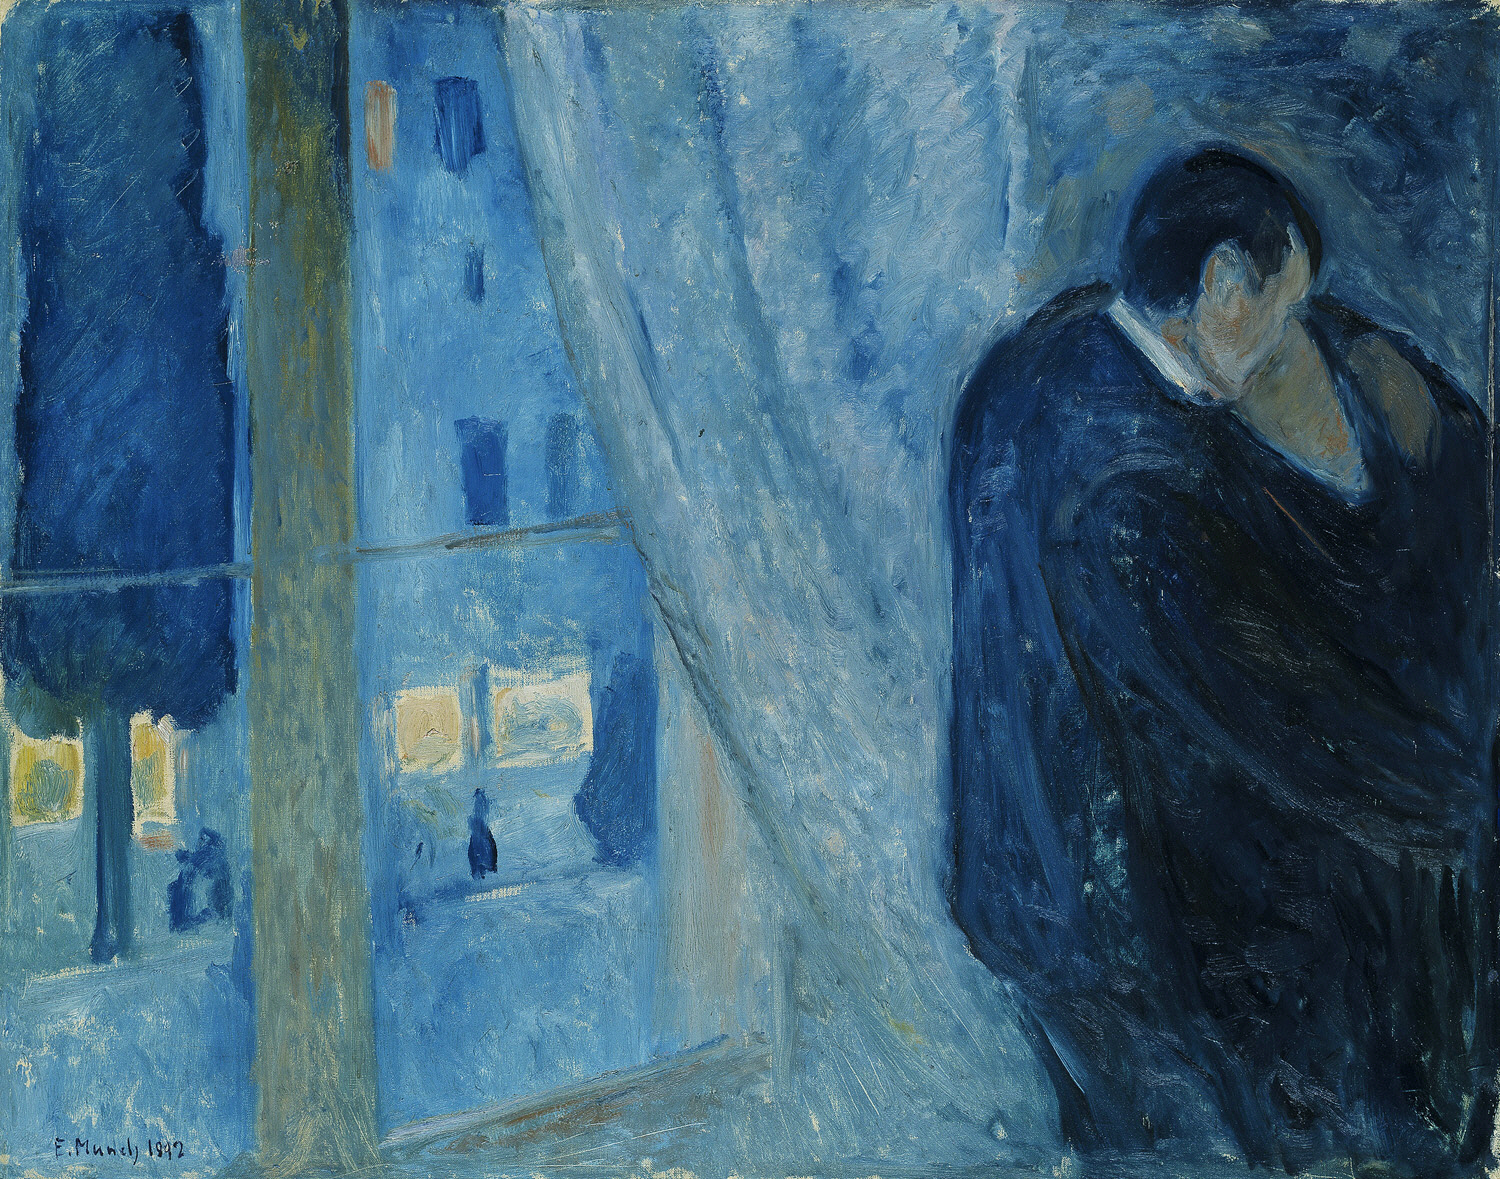 Nocturnal - the best nocturne paintings: Edvard Munch, Kiss by the Window